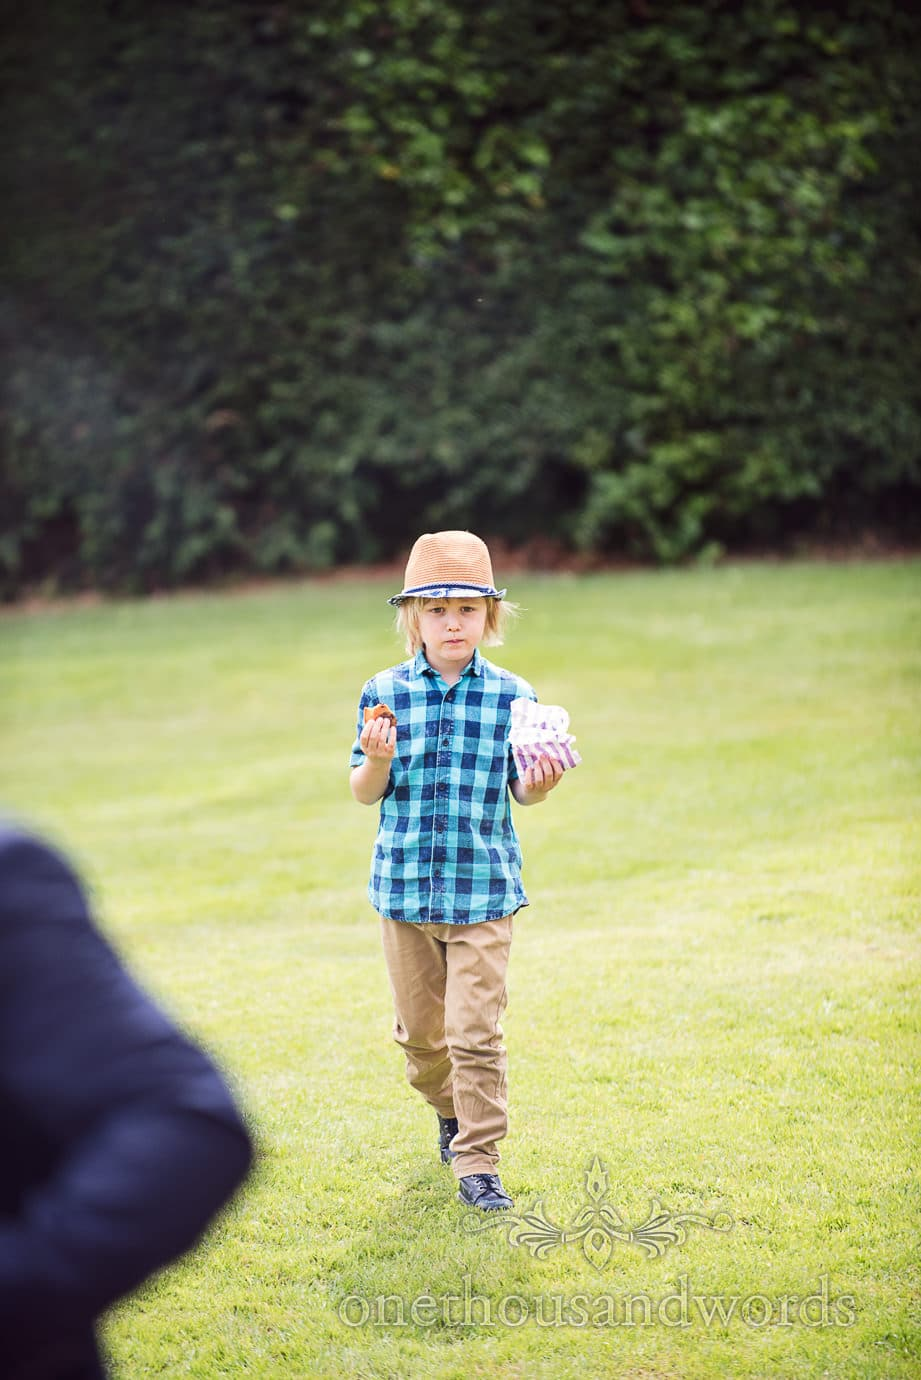 Child wedding guest in blue checked shirt and straw hat at country wedding